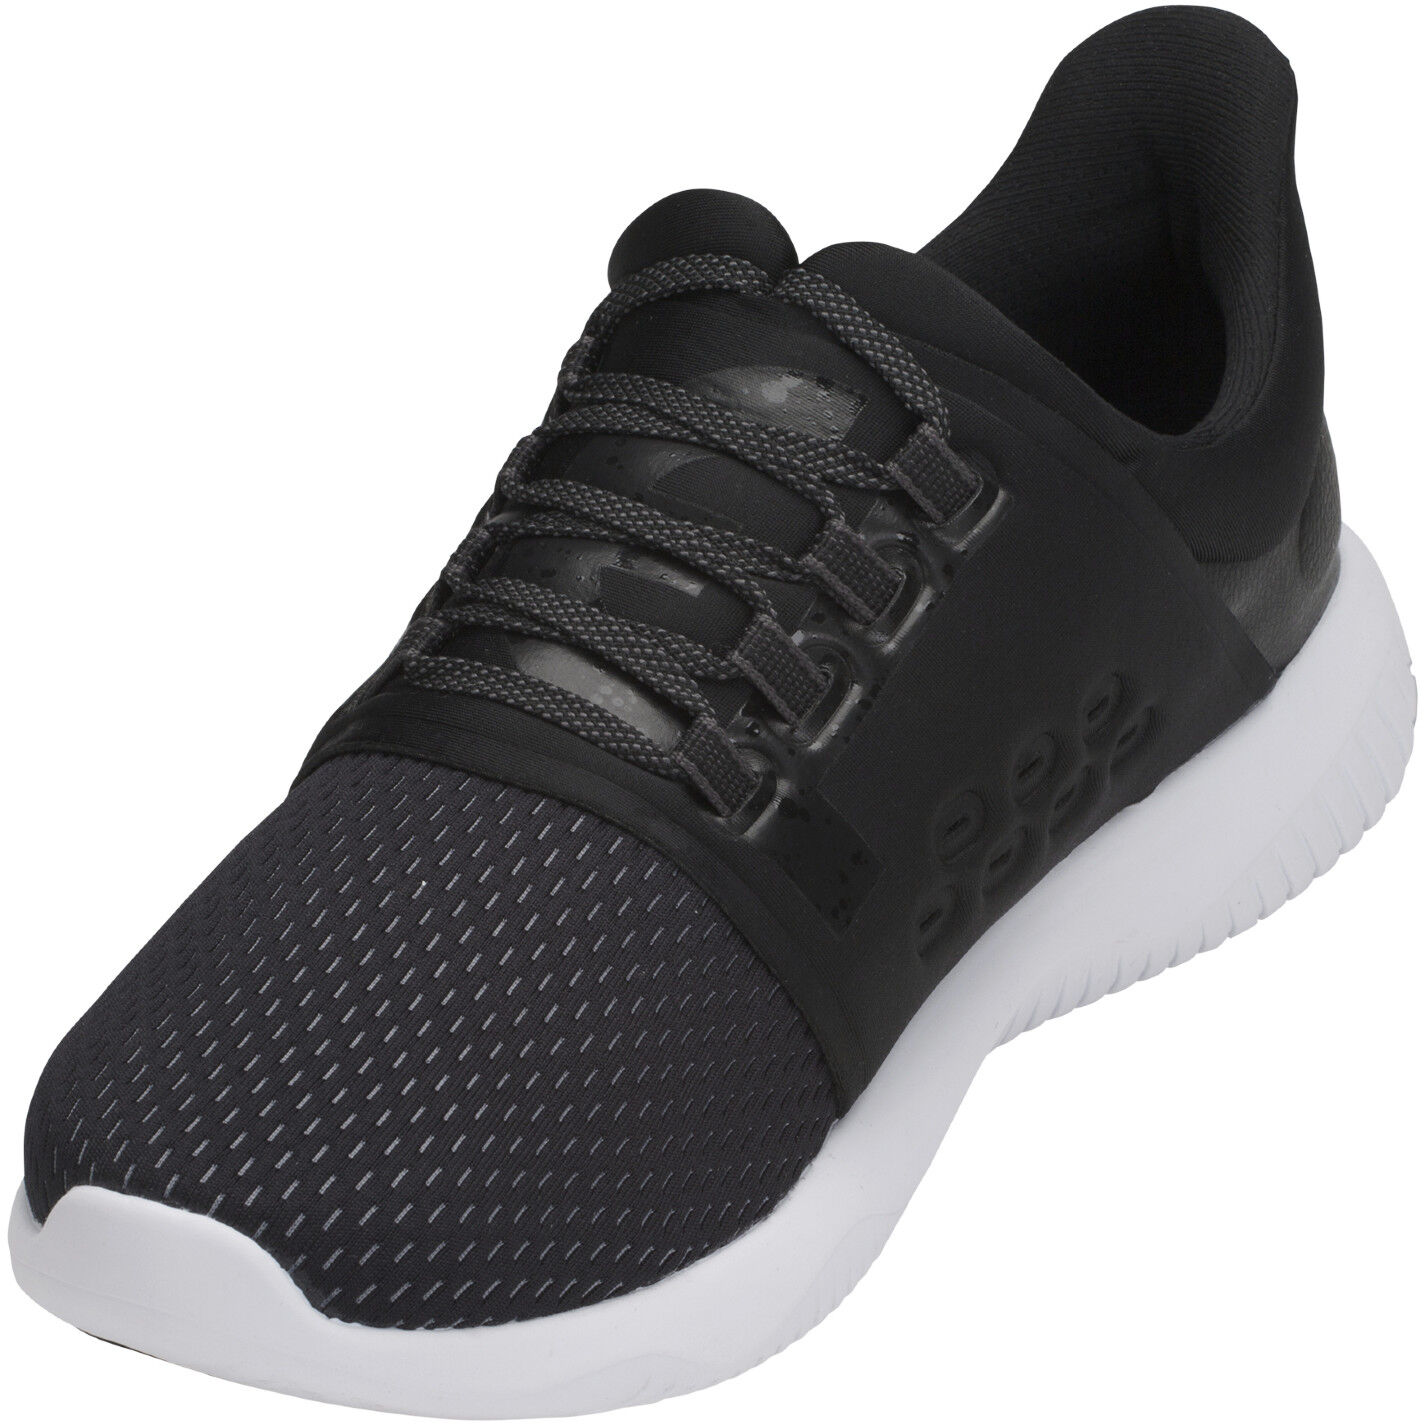 asics Gel Kenun Lyte Shoes Herren blackphantomdark grey